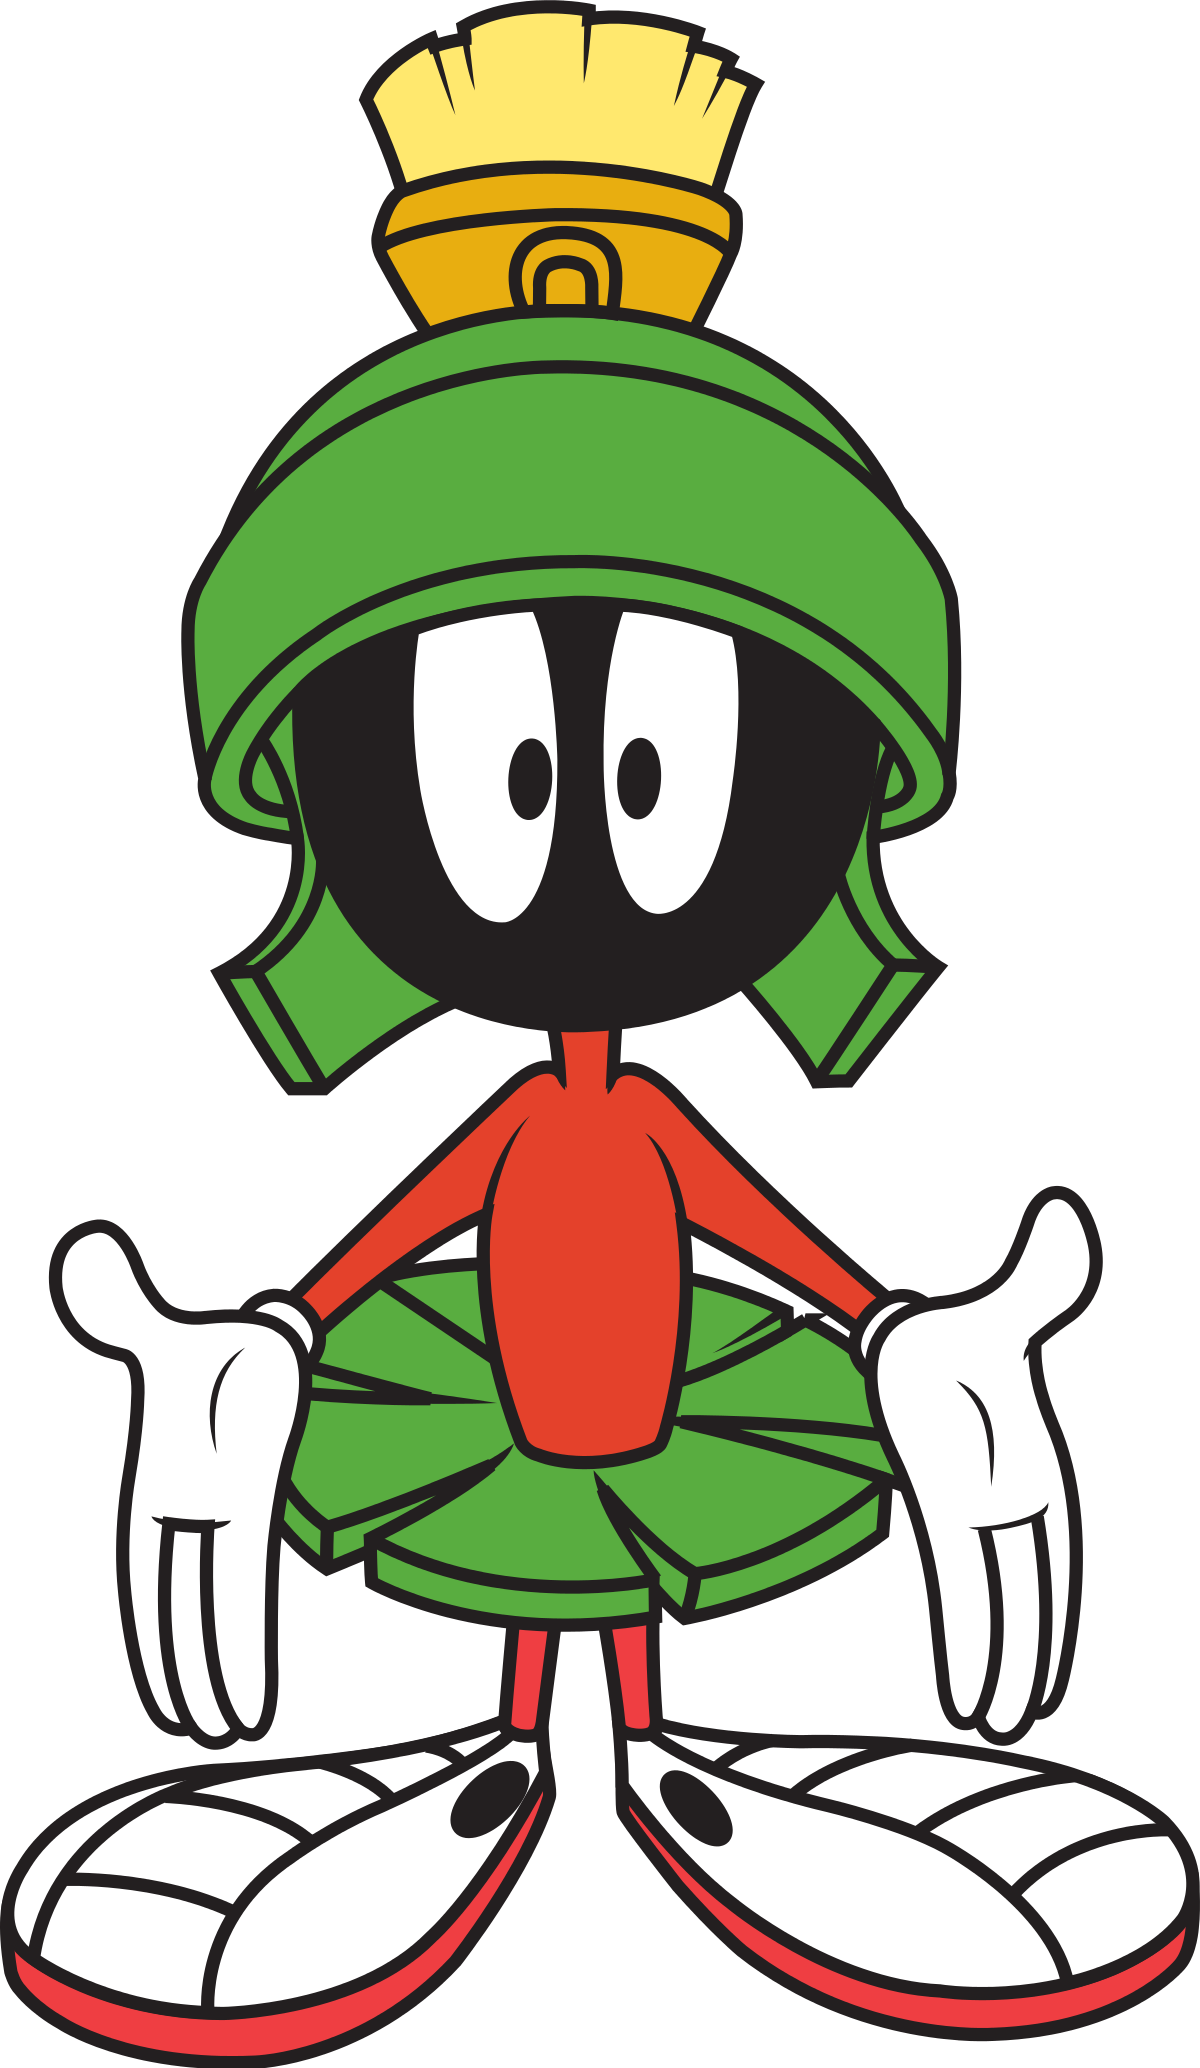 Cartoon Network clipart marvin the martian Martian Marvin  Wikipedia the